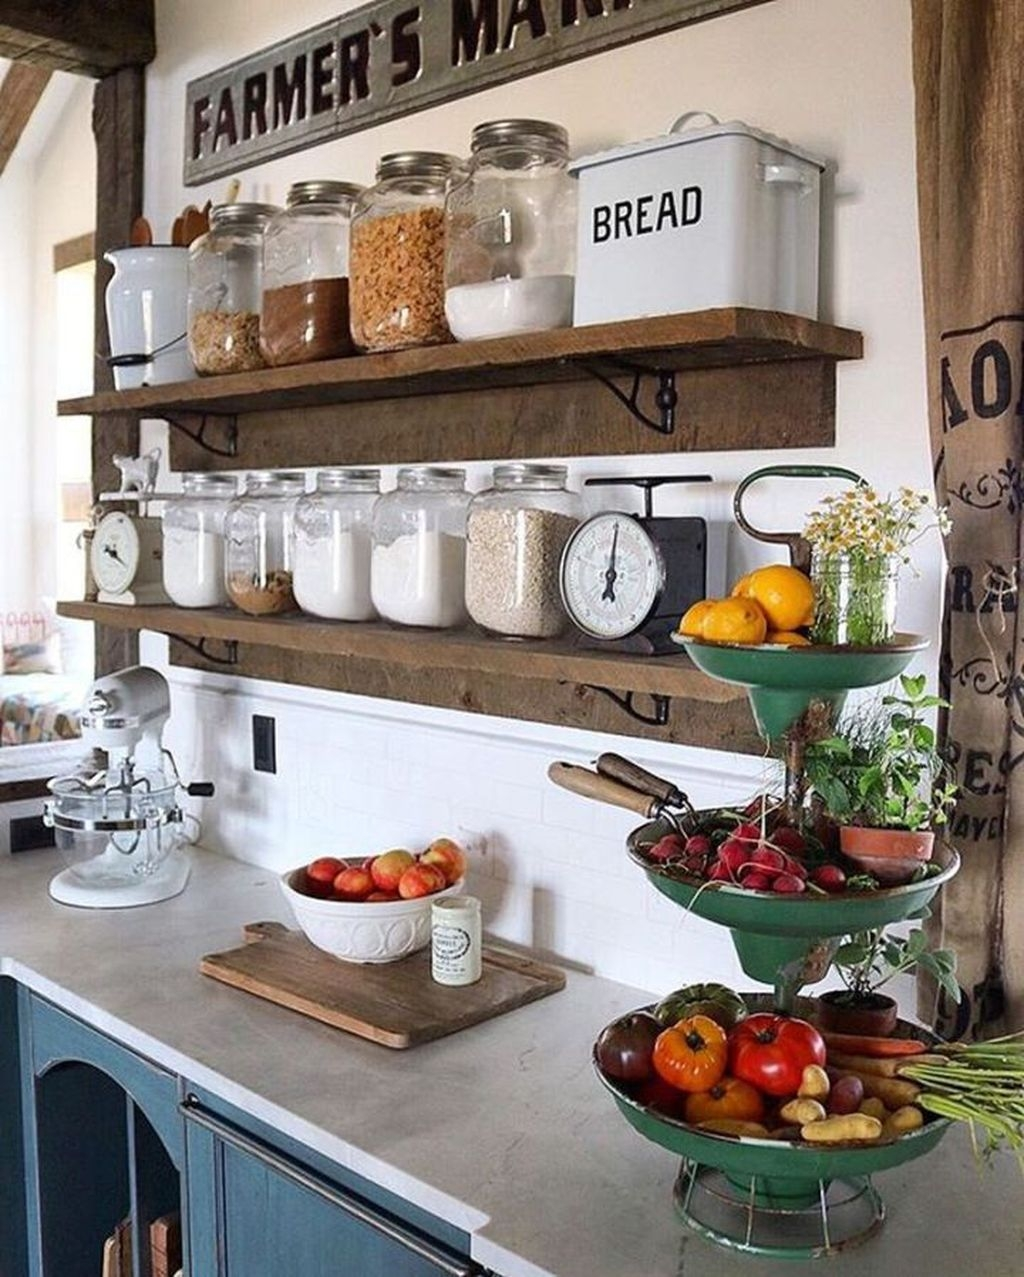 Stylish Rustic Kitchen Apartment Decoration Ideas 04